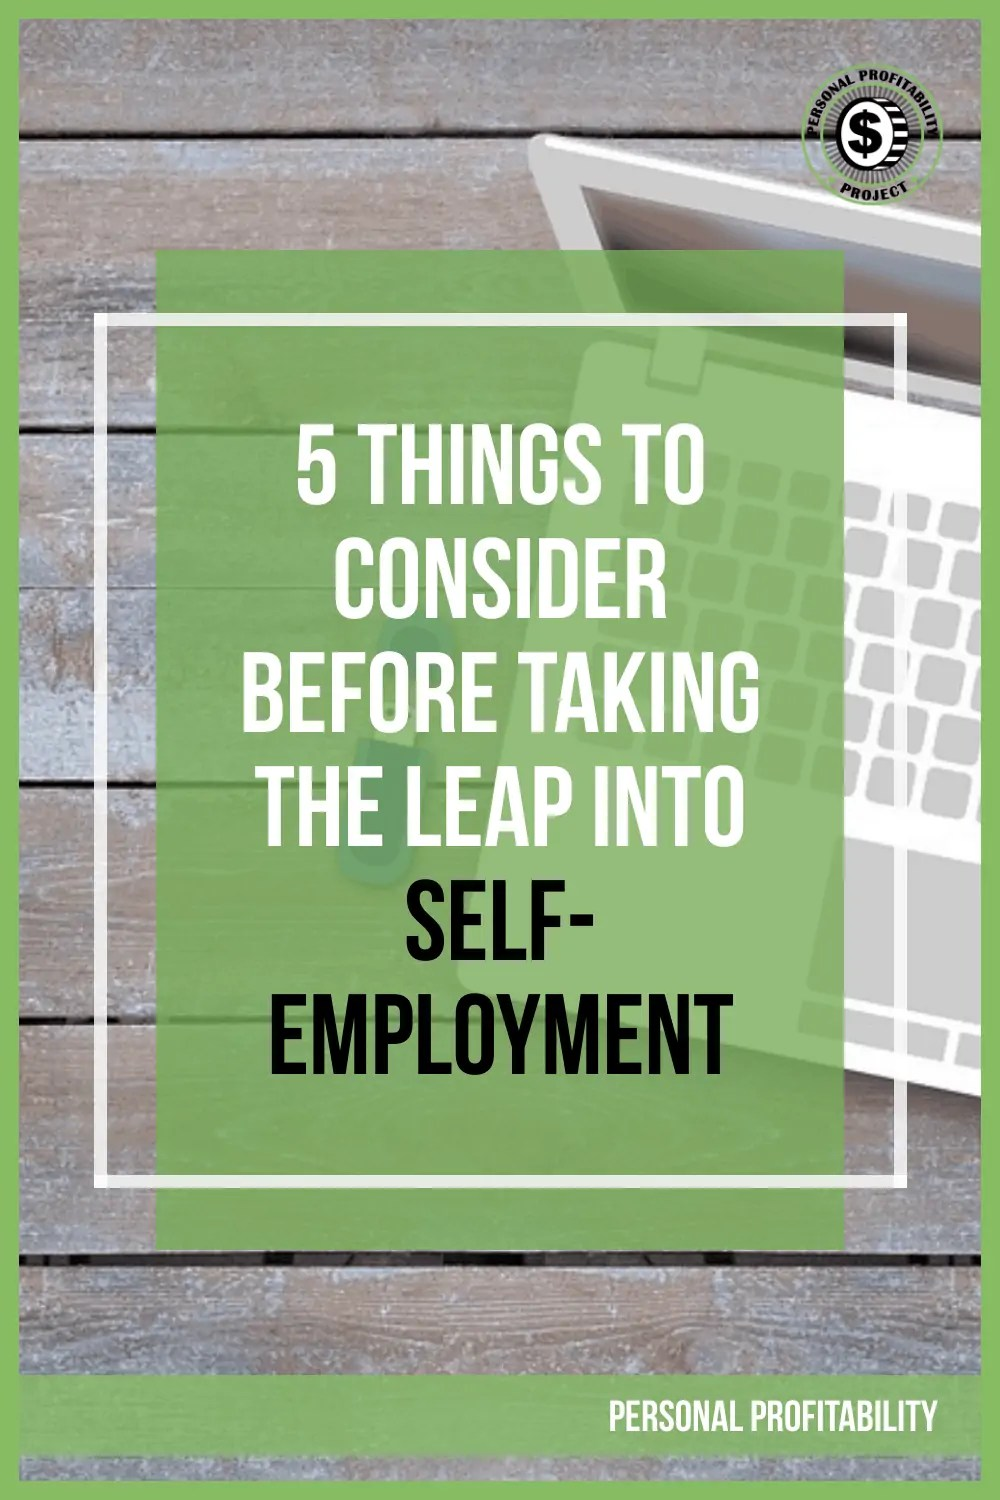 5 Things to Consider Before Taking the Leap into Self-Employment